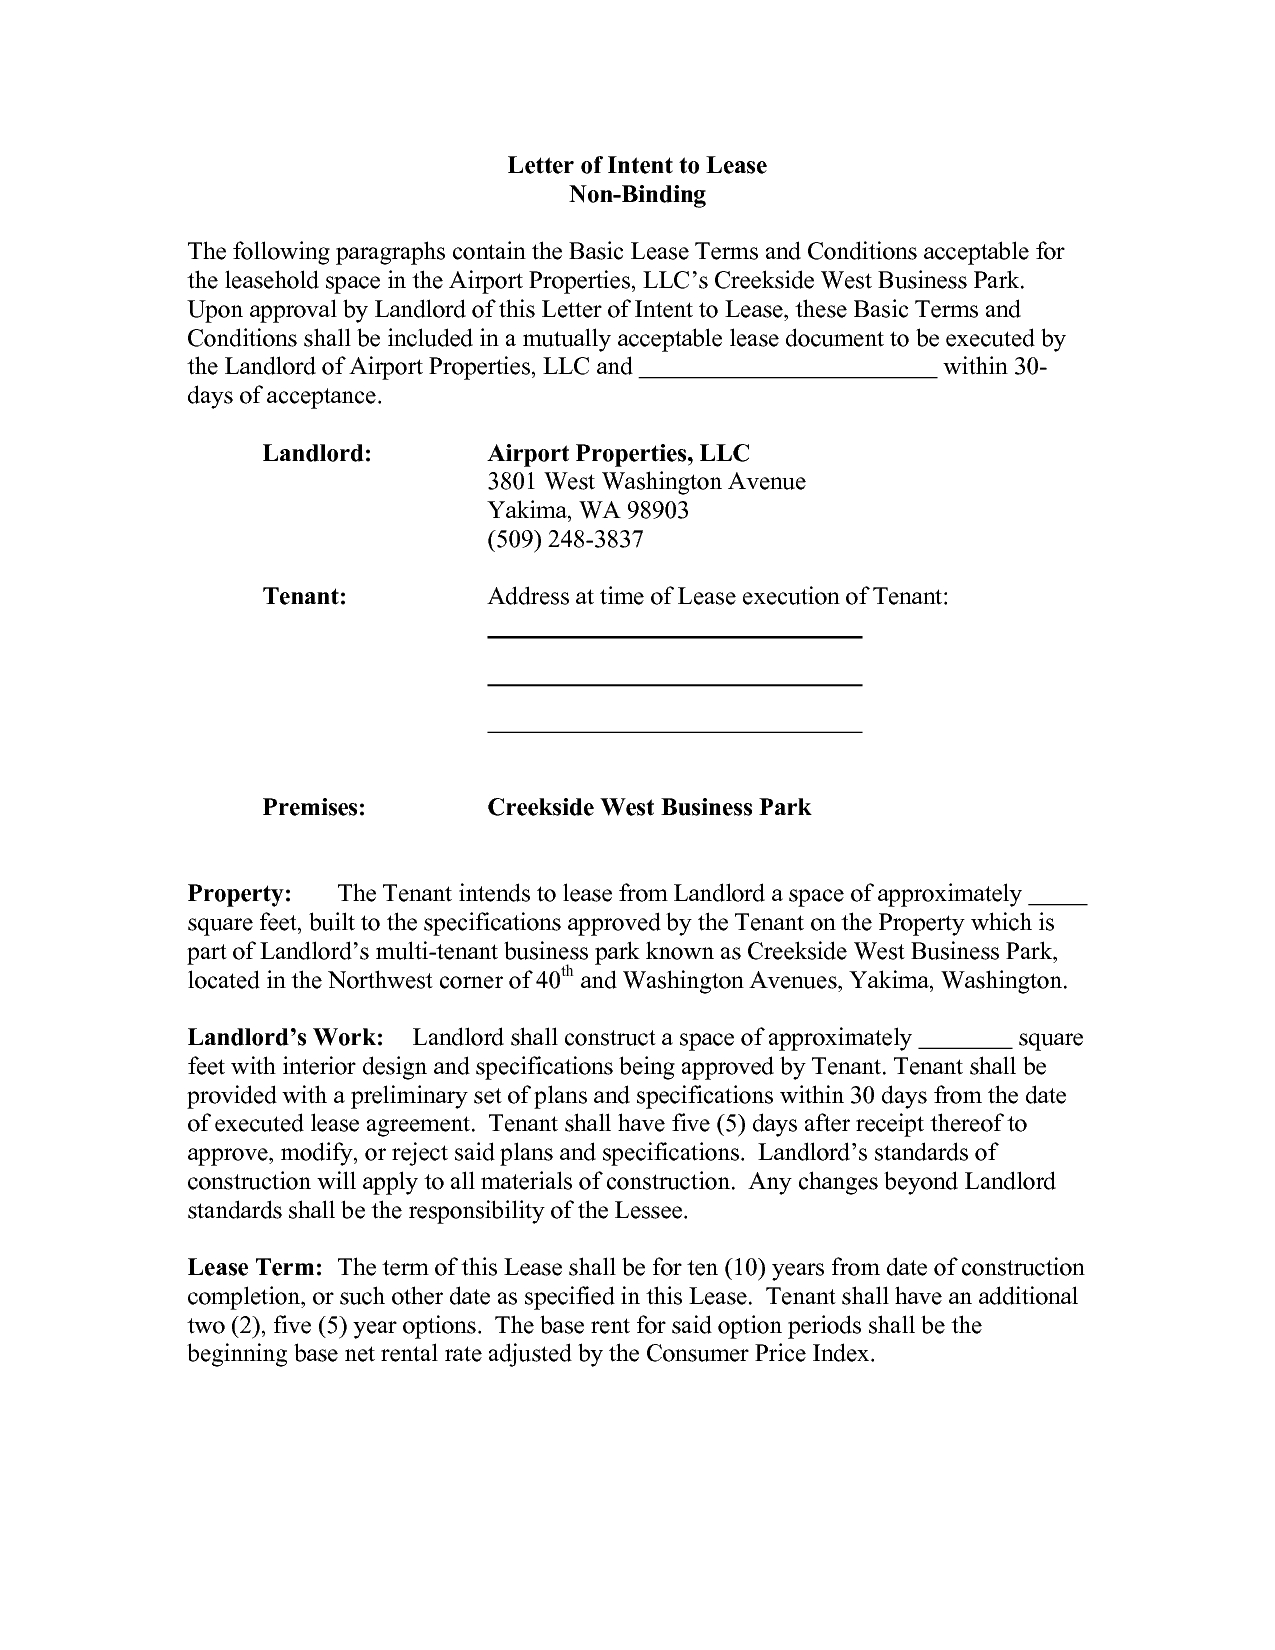 Letter Of Intent to Rent Template - Best Ideas Letter Intent Real Estate Lease Sample Nice Free to